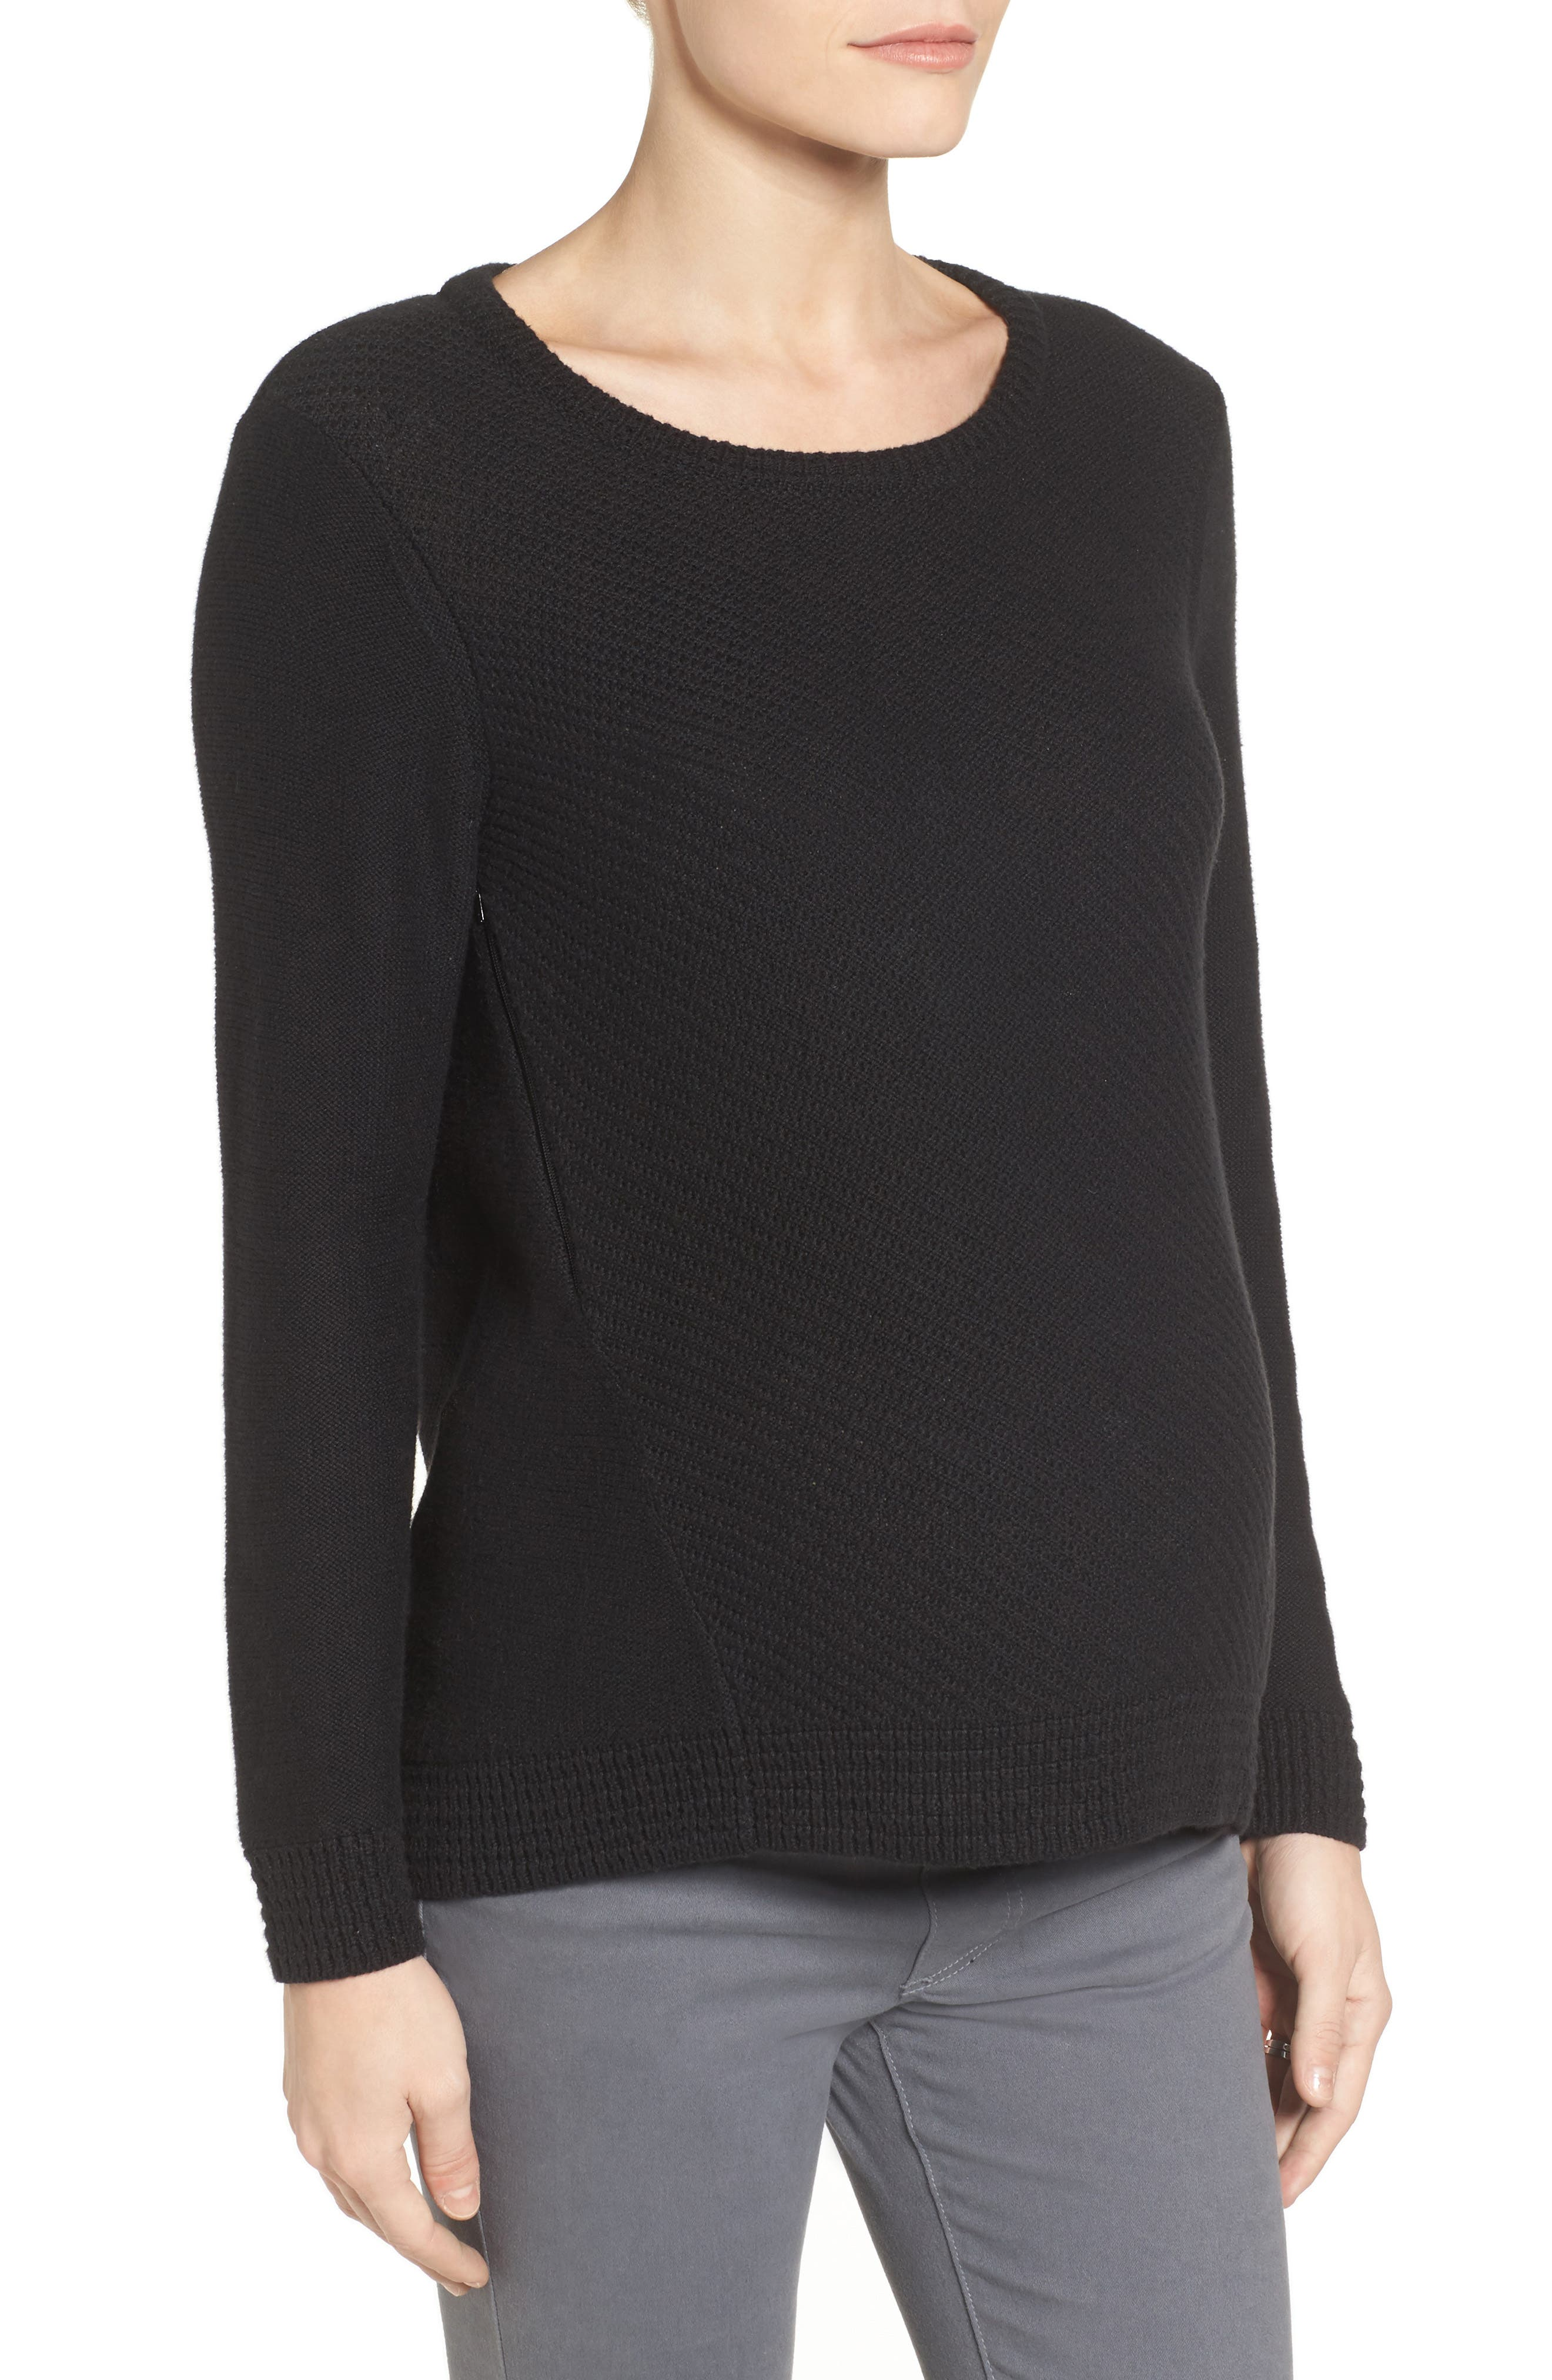 Wiley Maternity/Nursing Sweatshirt,                             Alternate thumbnail 4, color,                             BLACK